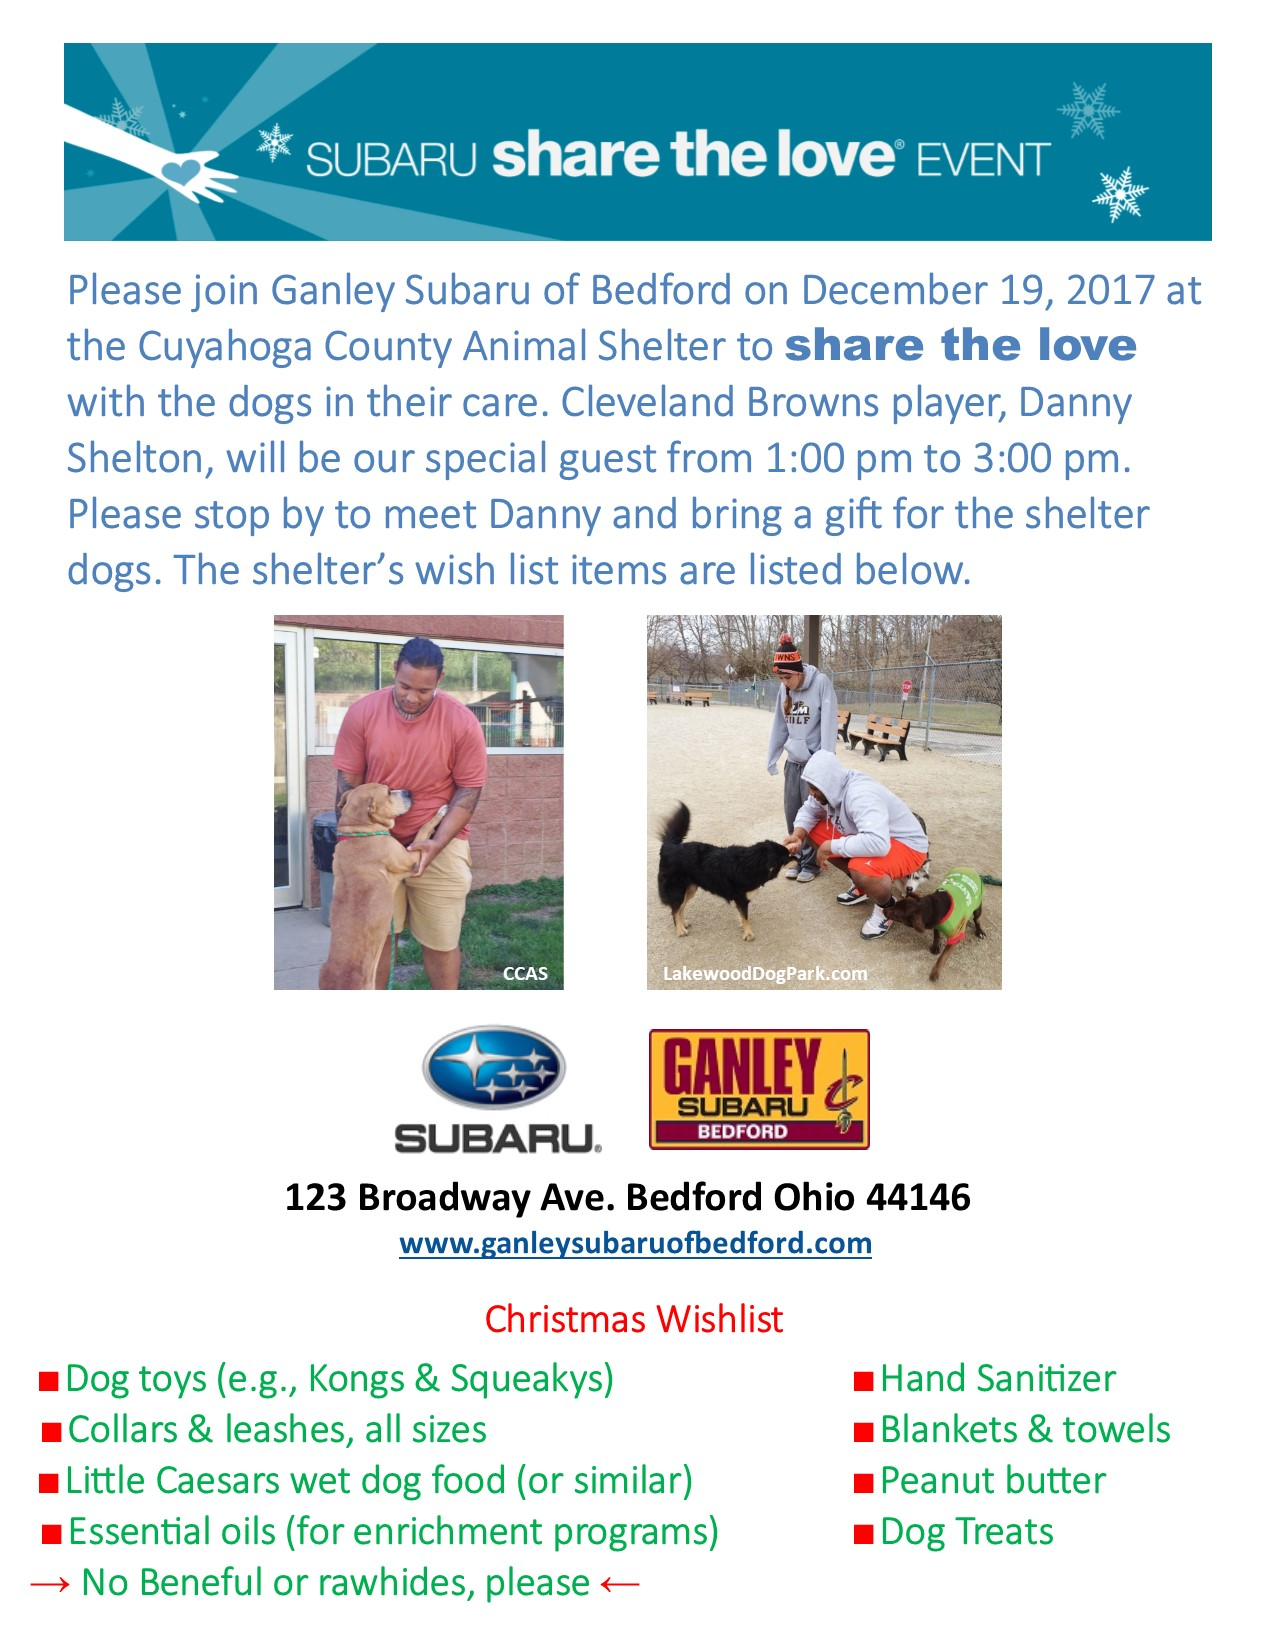 Share the Love at Cuyahoga County Animal Shelter | Lakewood Dog Park